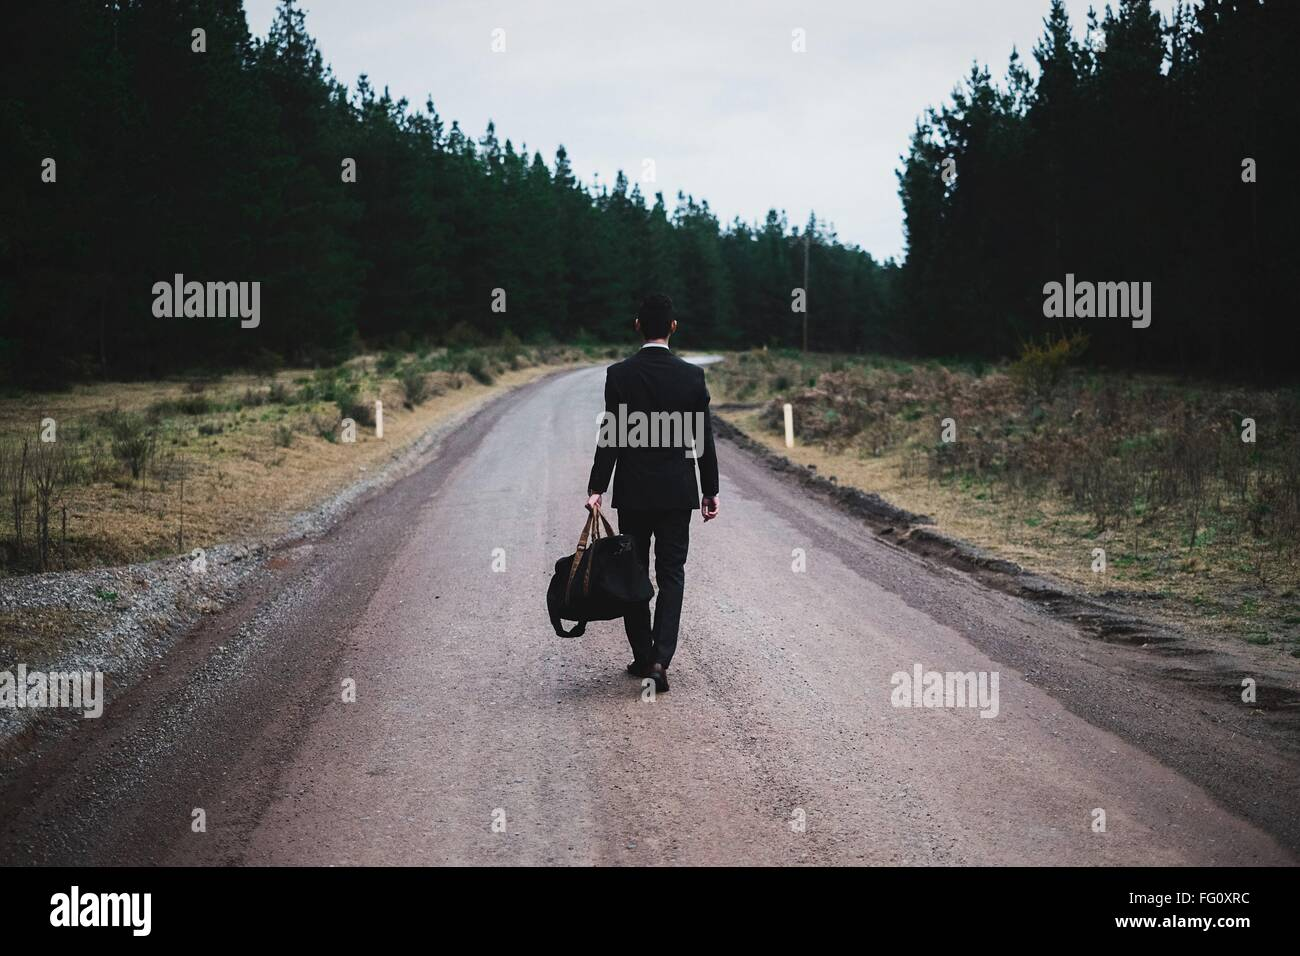 Full Length Rear View Of Man With Luggage Walking On Road Against Sky - Stock Image